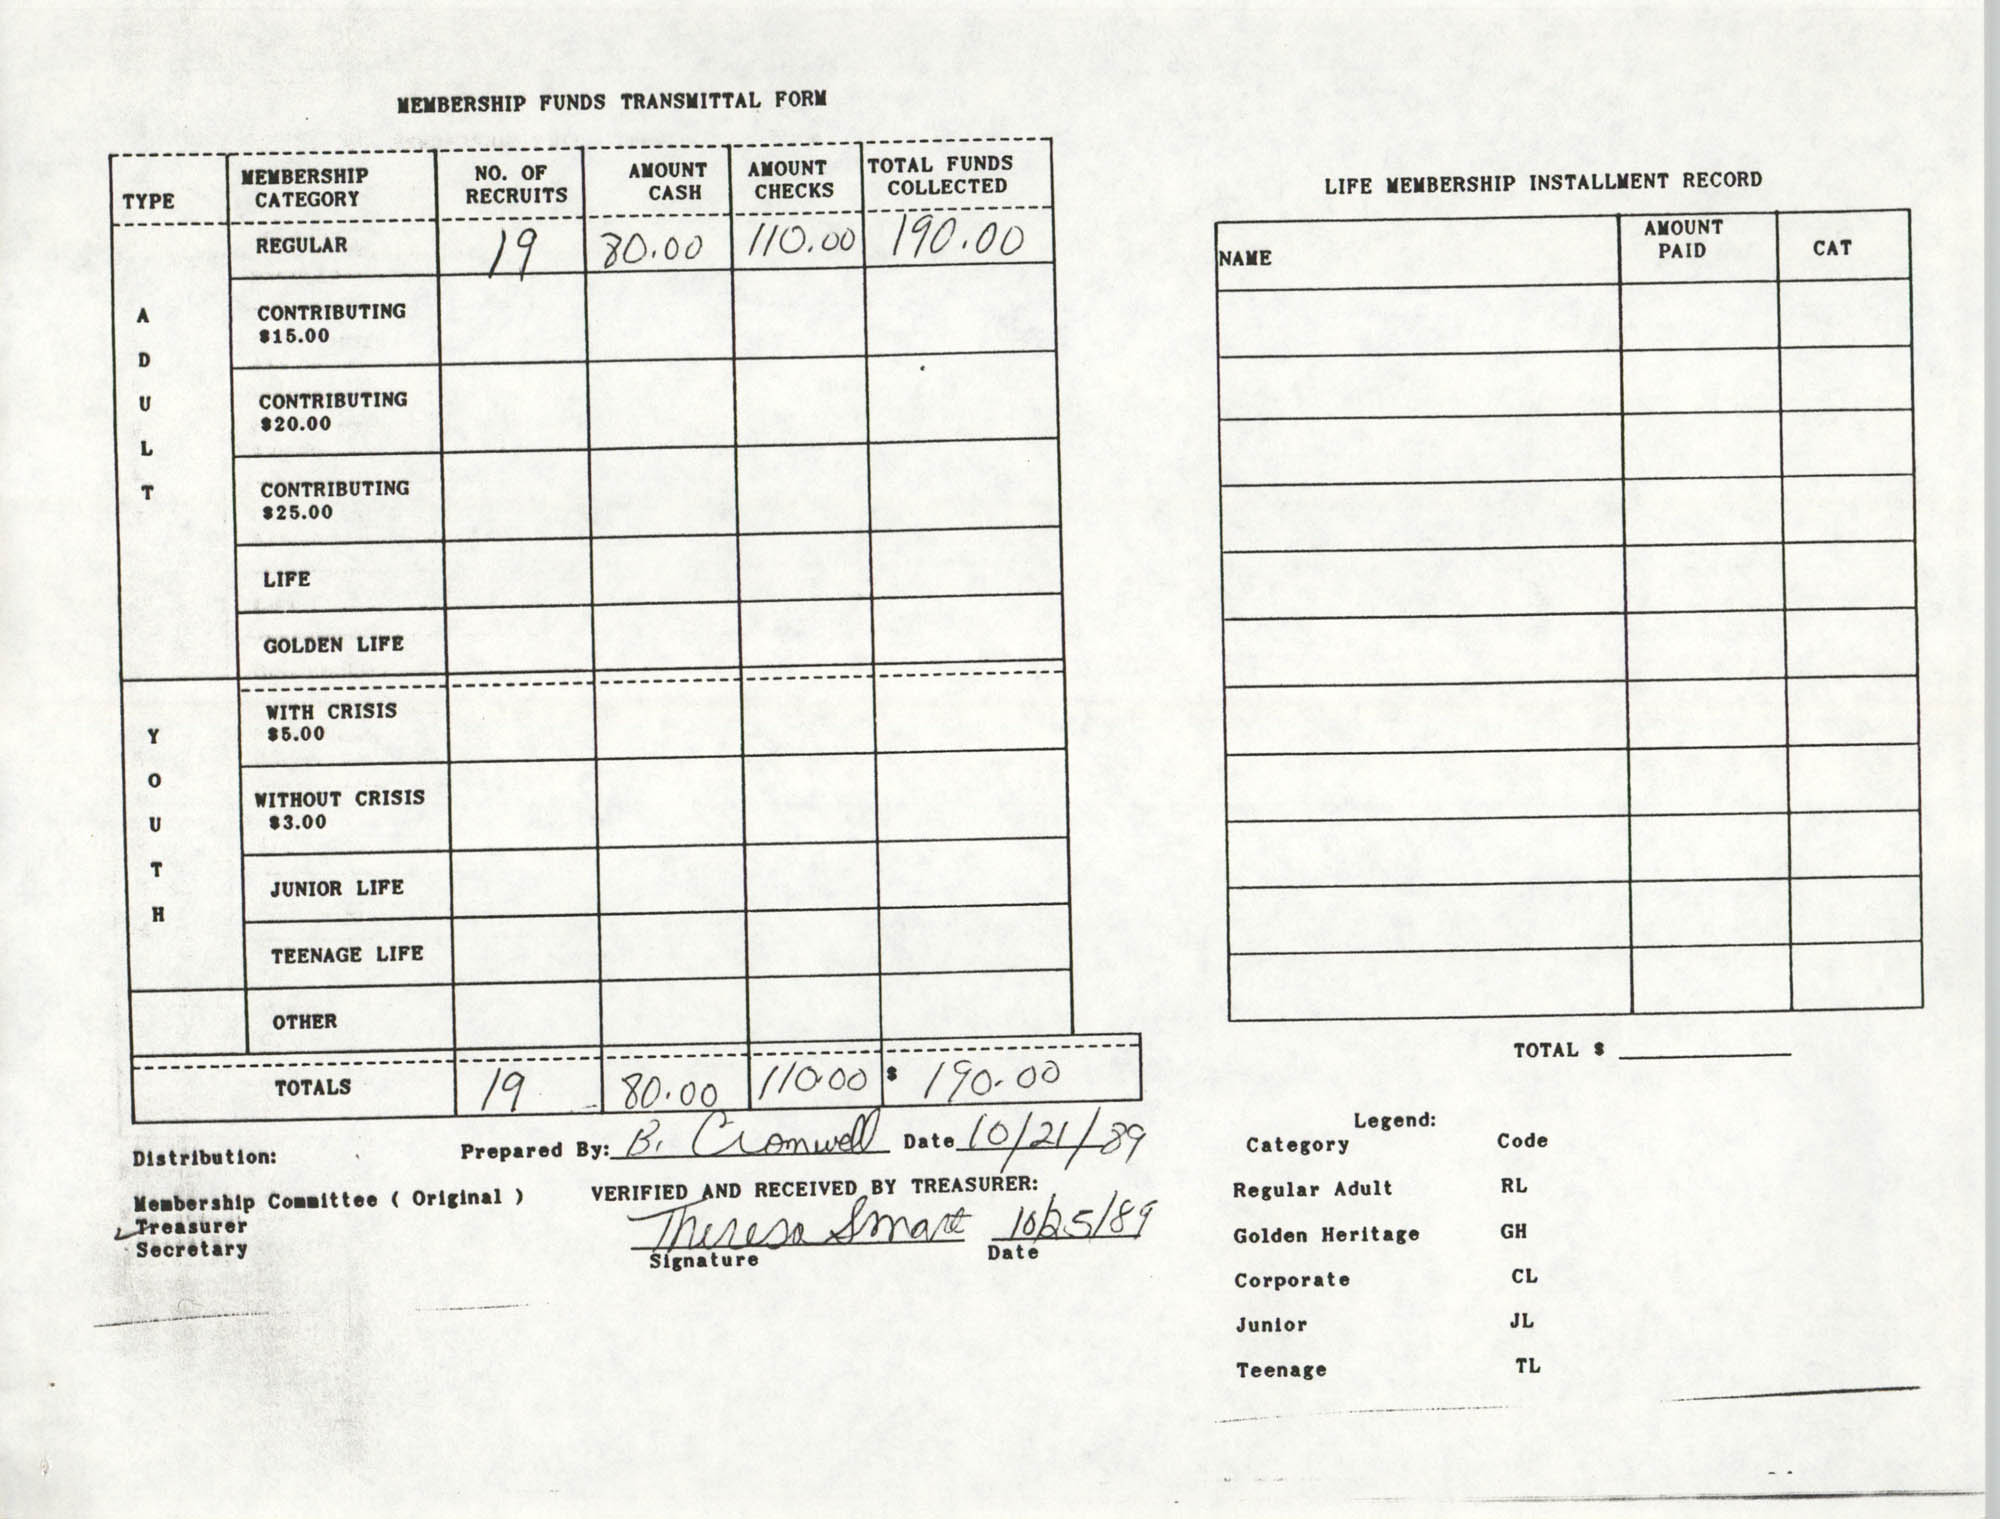 Charleston Branch of the NAACP Funds Transmittal Forms, October 1989, Page 7